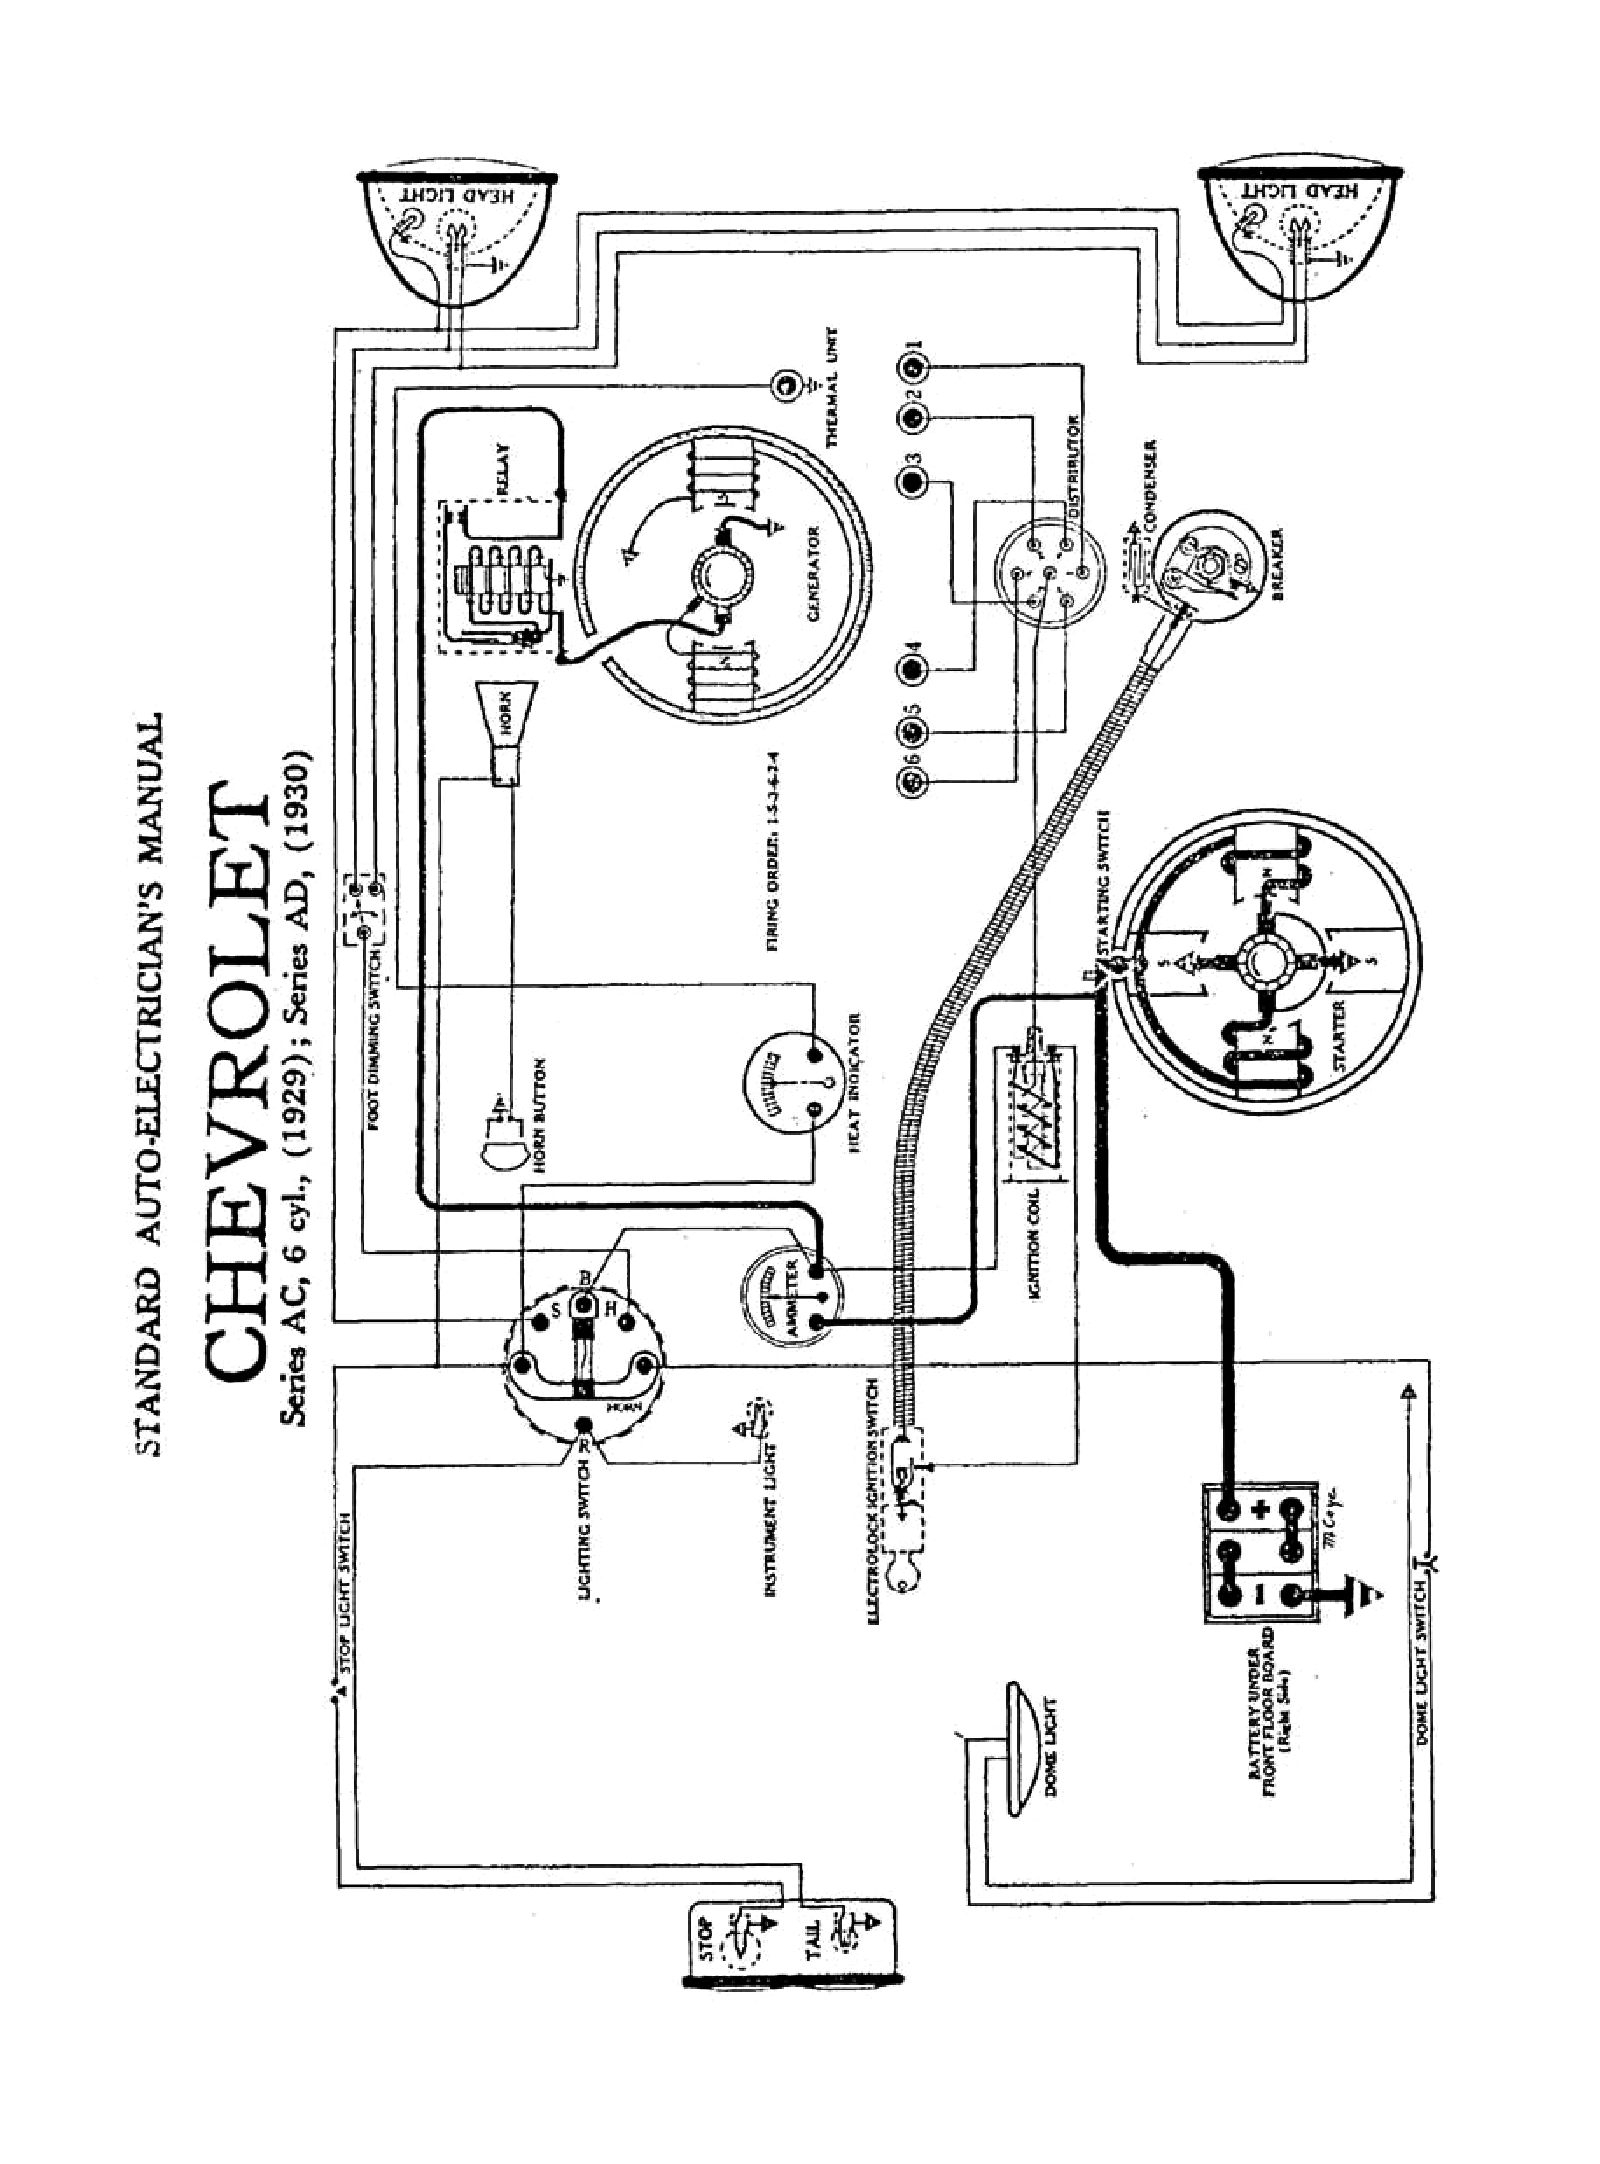 1940 Ford Wiring Diagram Free Download Schematic  U2013 Wires